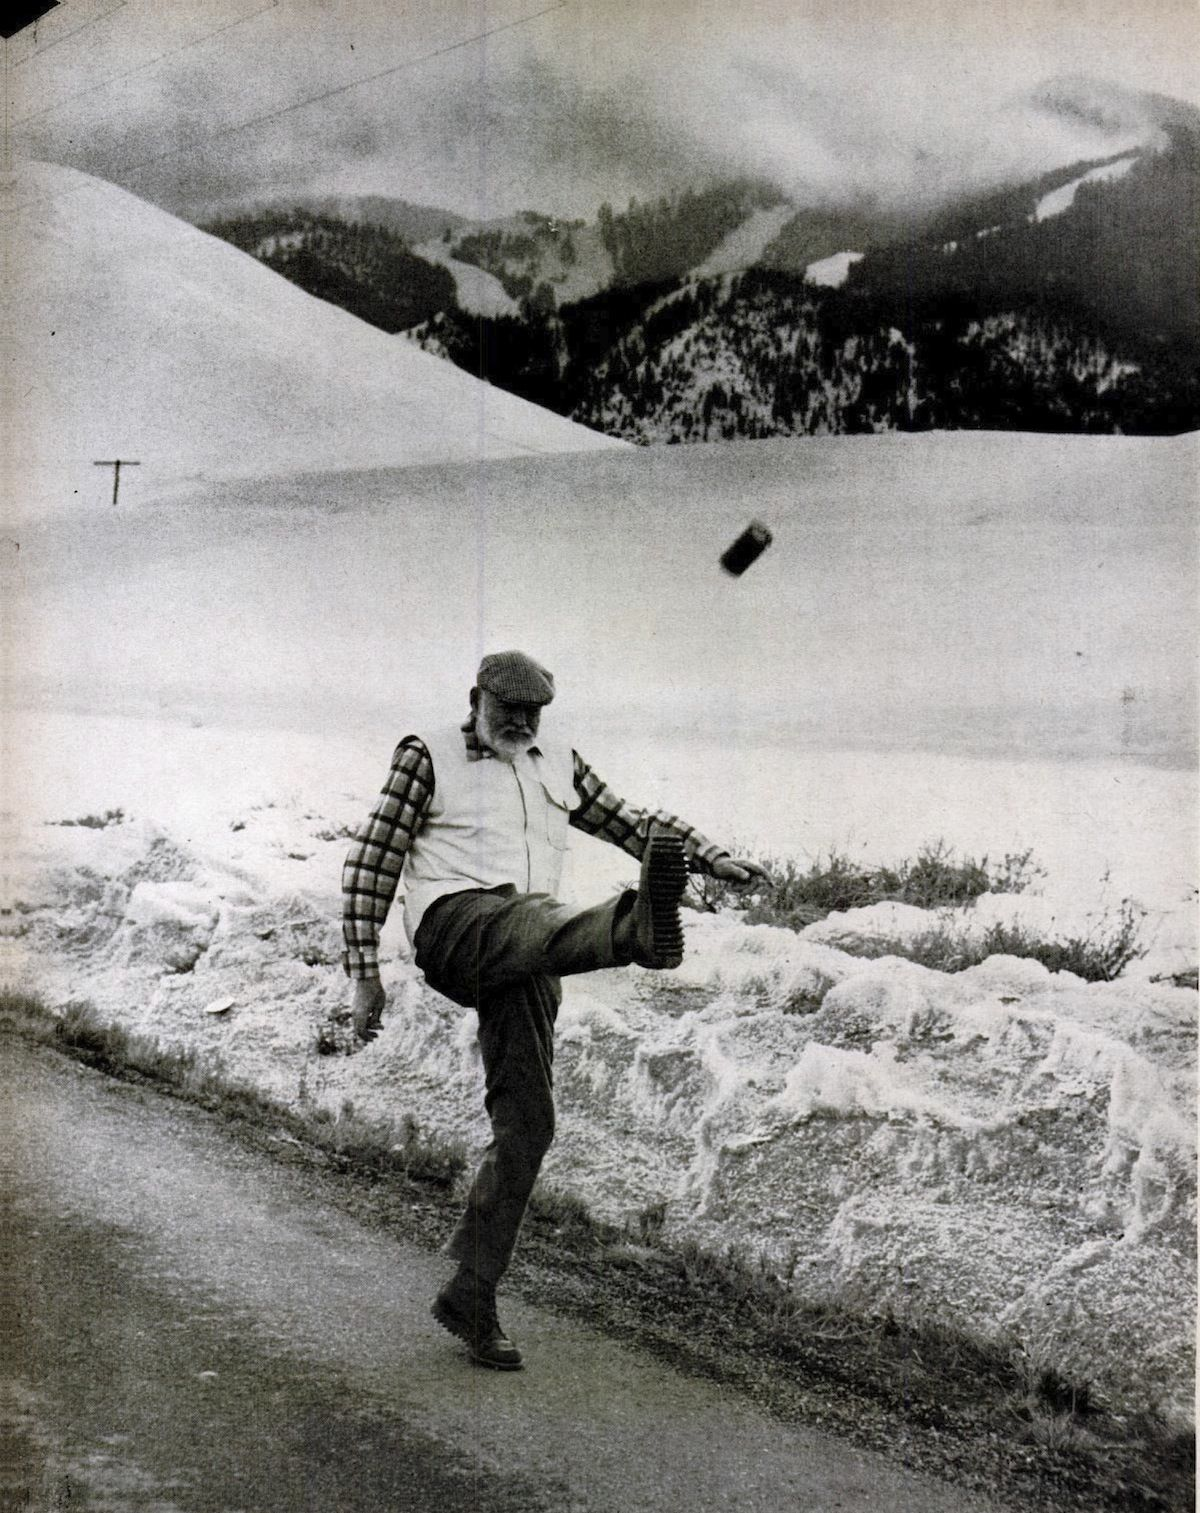 Ernest Hemingway kicking a can of beer by John Bryson, 1959